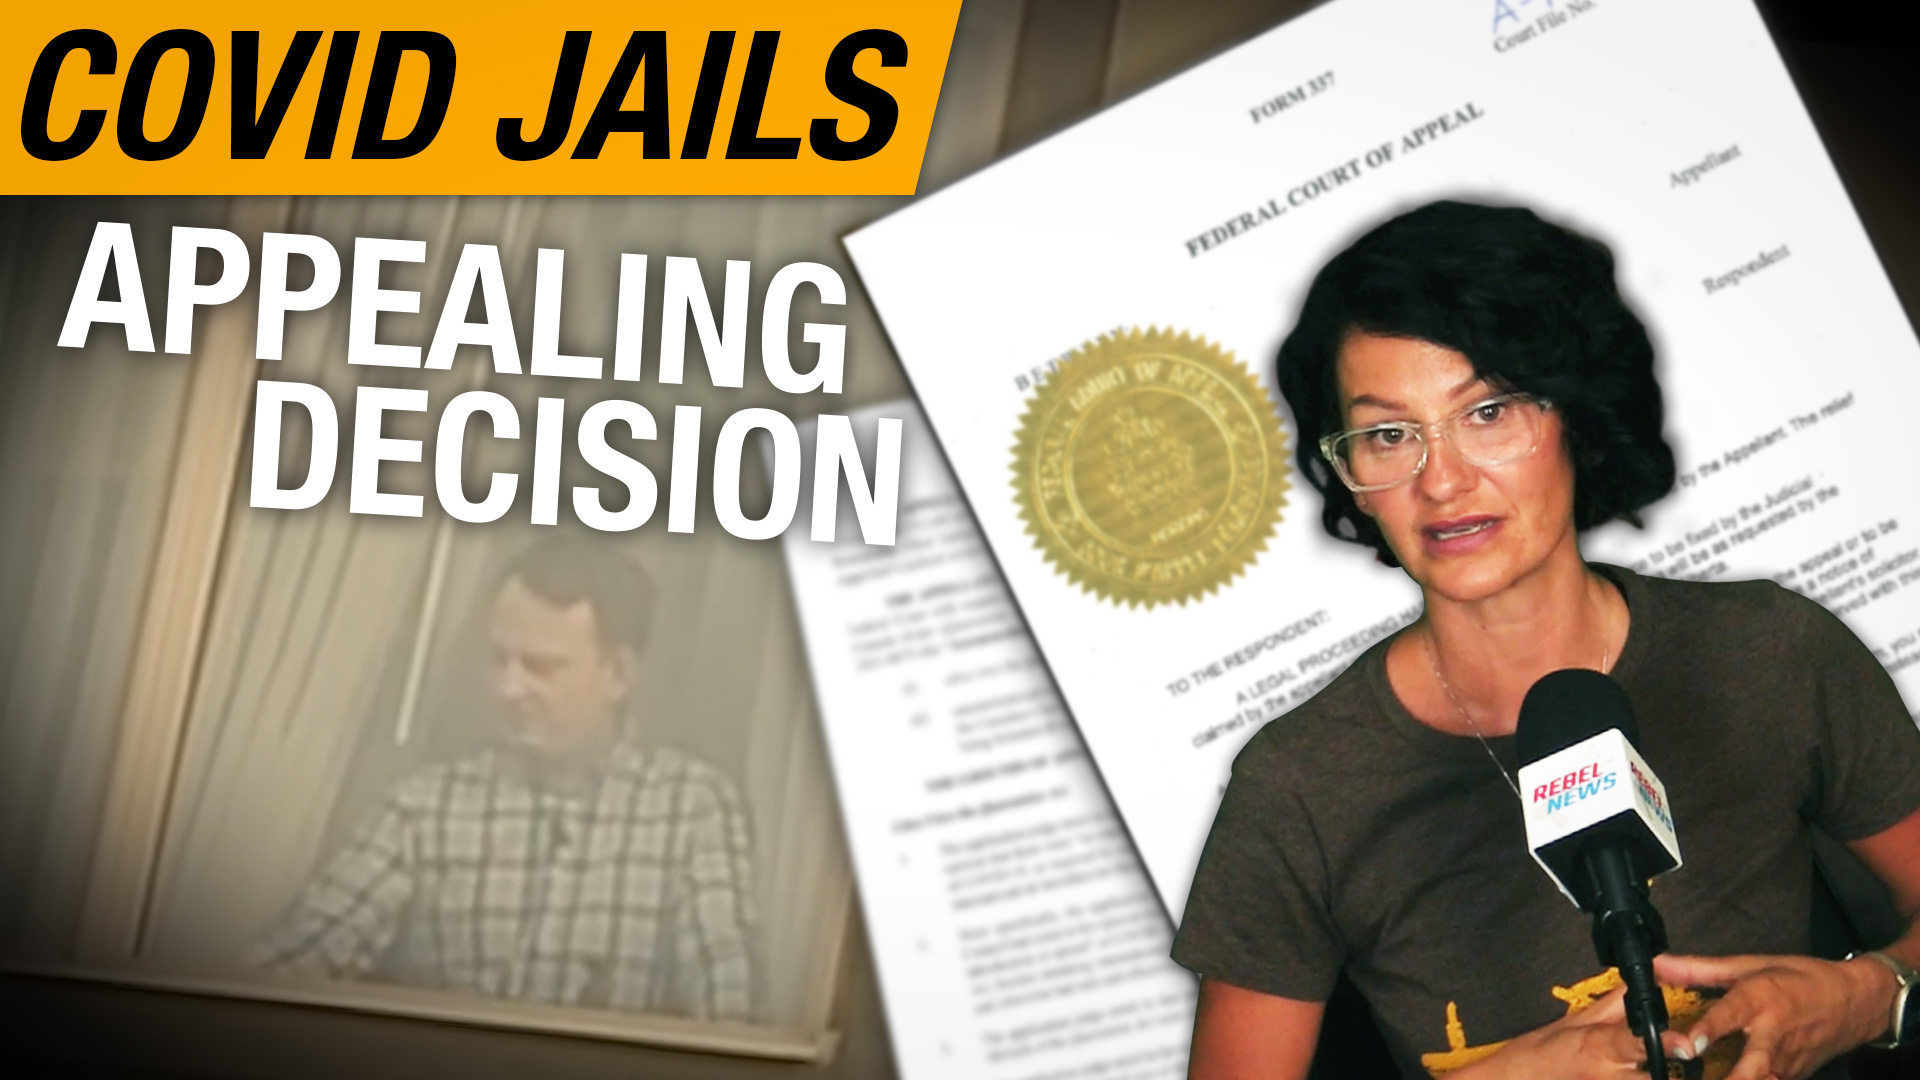 BREAKING: Rebel News is appealing Federal Court decision to keep Justin Trudeau's COVID jail system in place